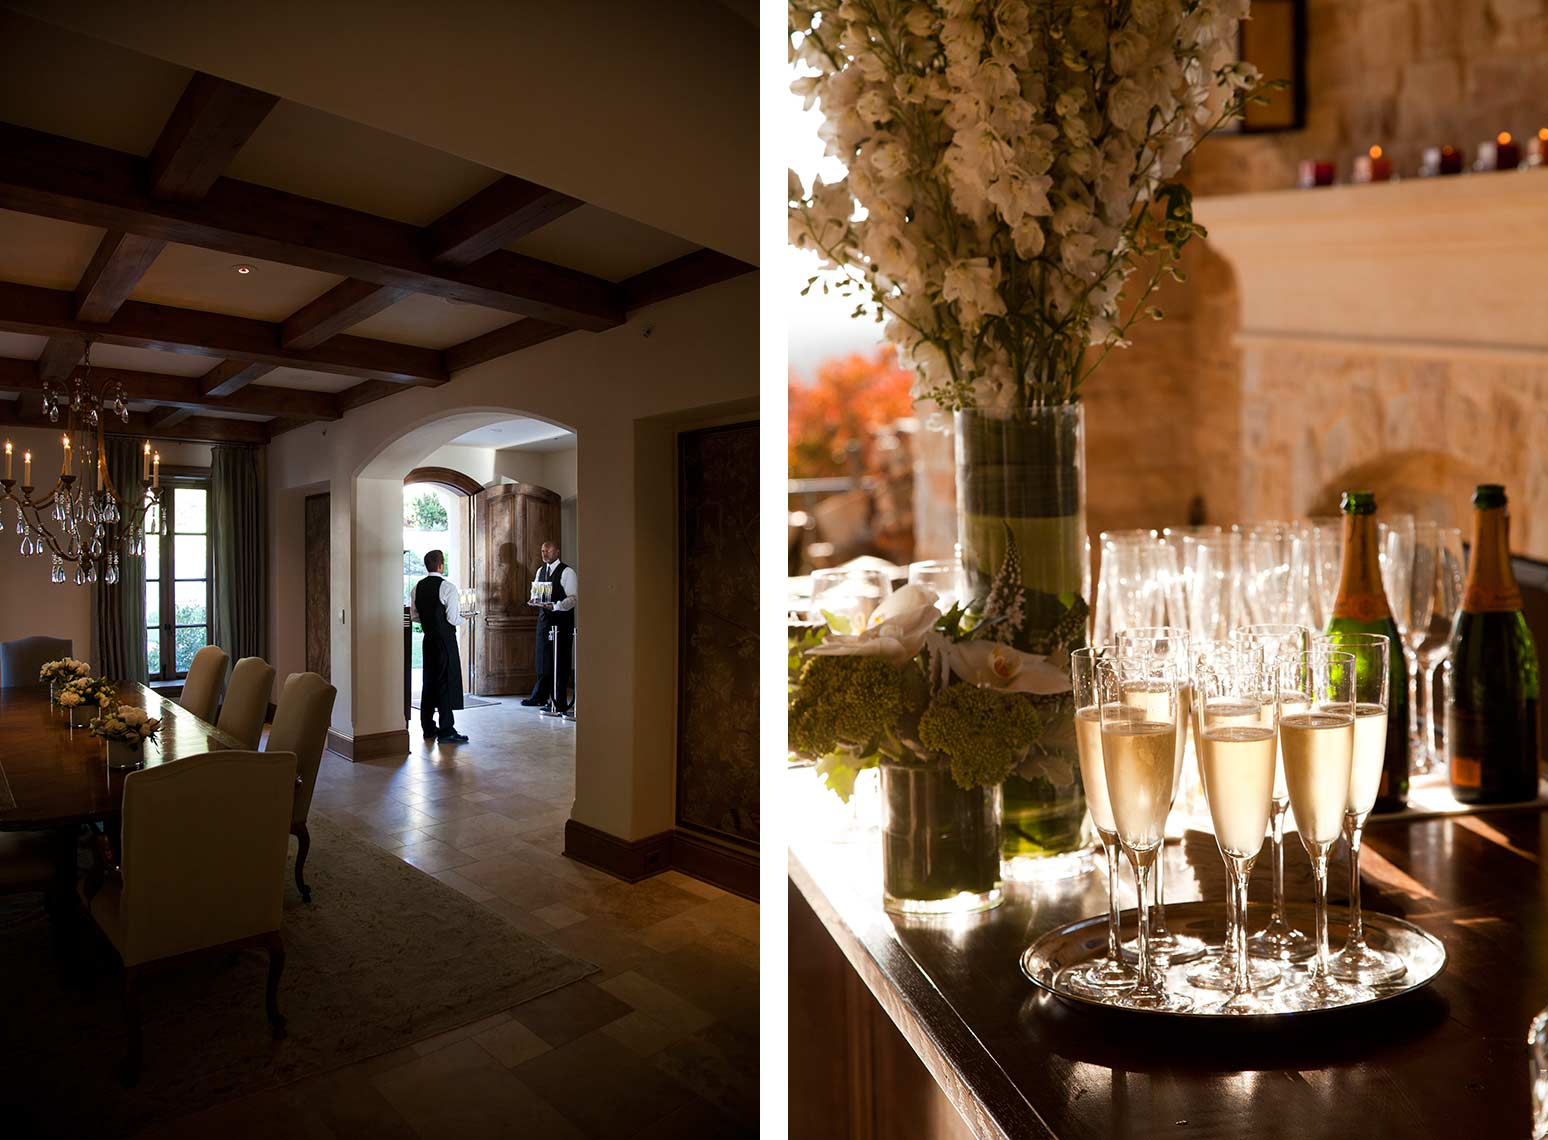 Interior and event photography by Jason Tinacci, Carmel, California